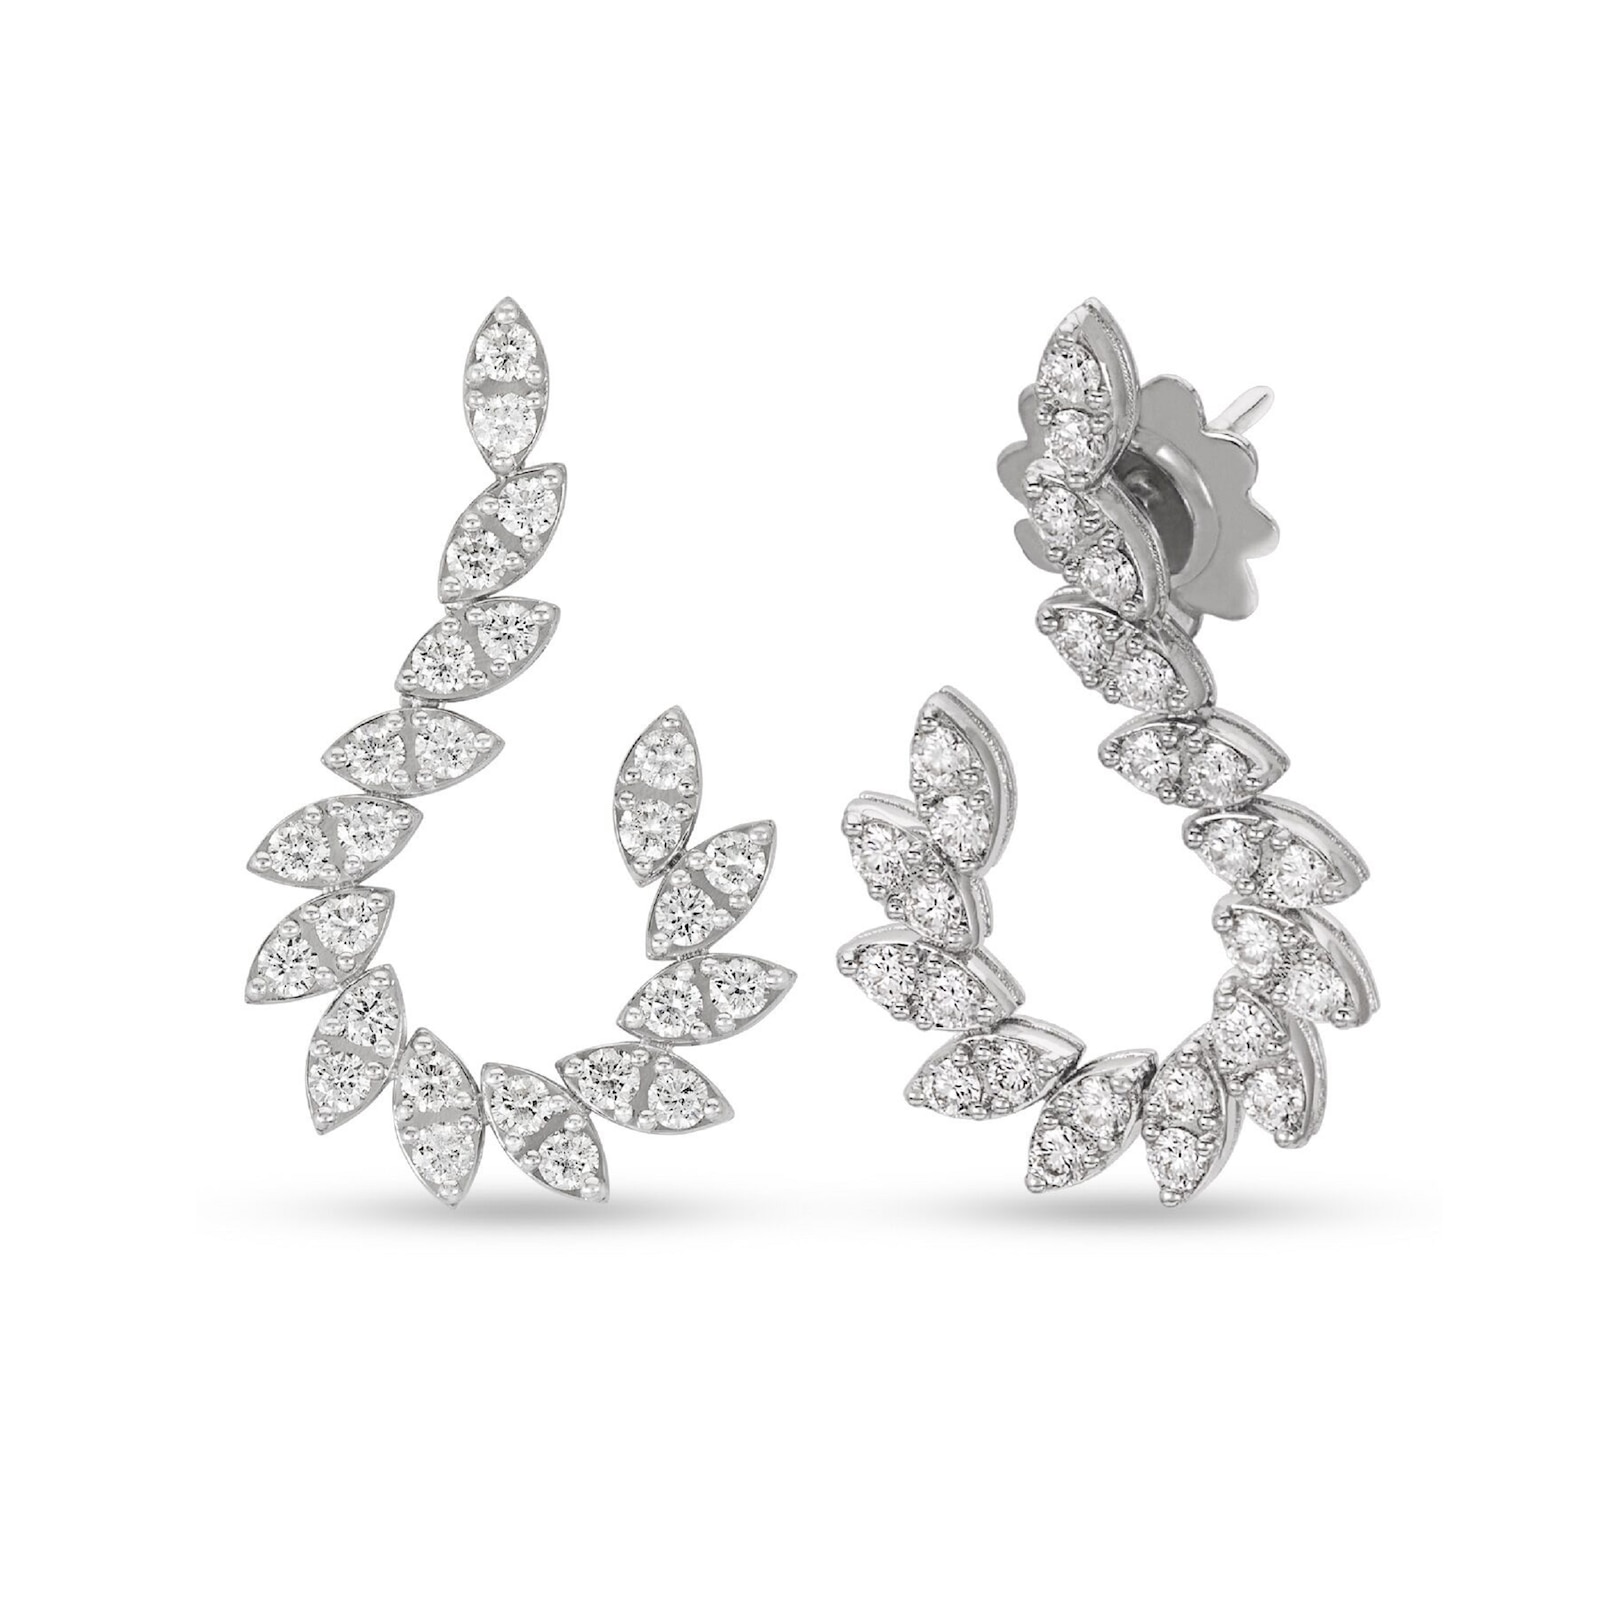 Roberto Coin The Marquesa Collection 18k White Gold 1.55cttw Diamond Earrings